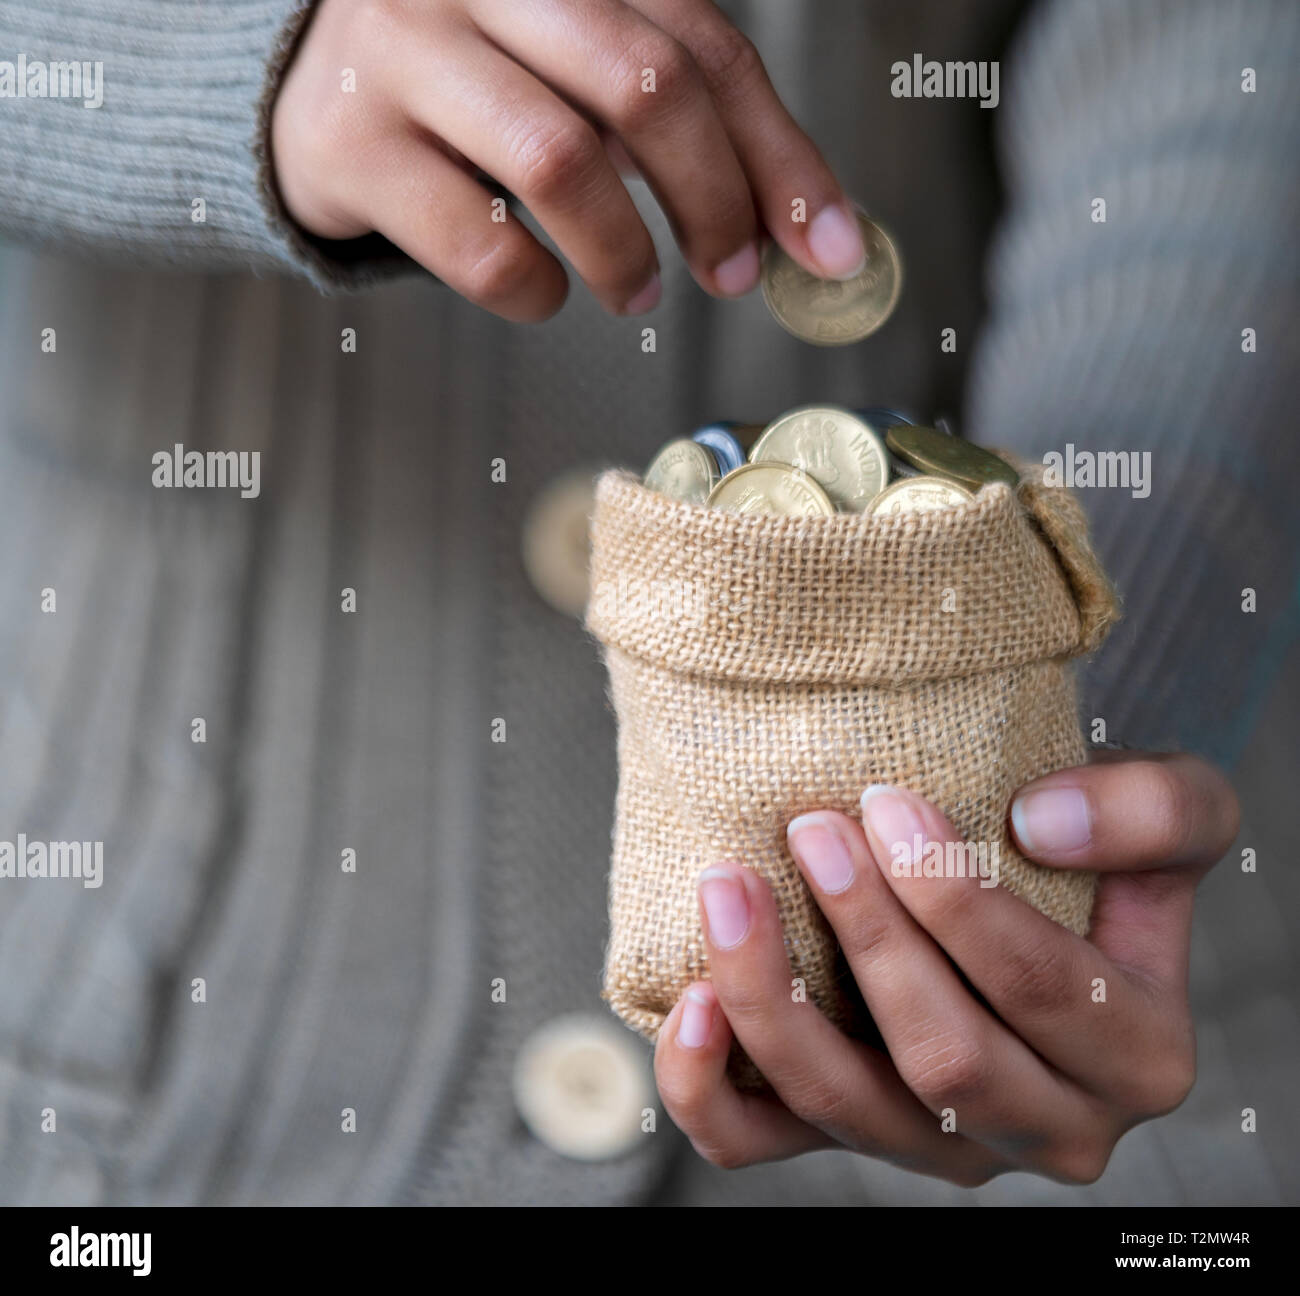 Saving money or coins in a sack holding in a young female hand for brighter future education. - Stock Image